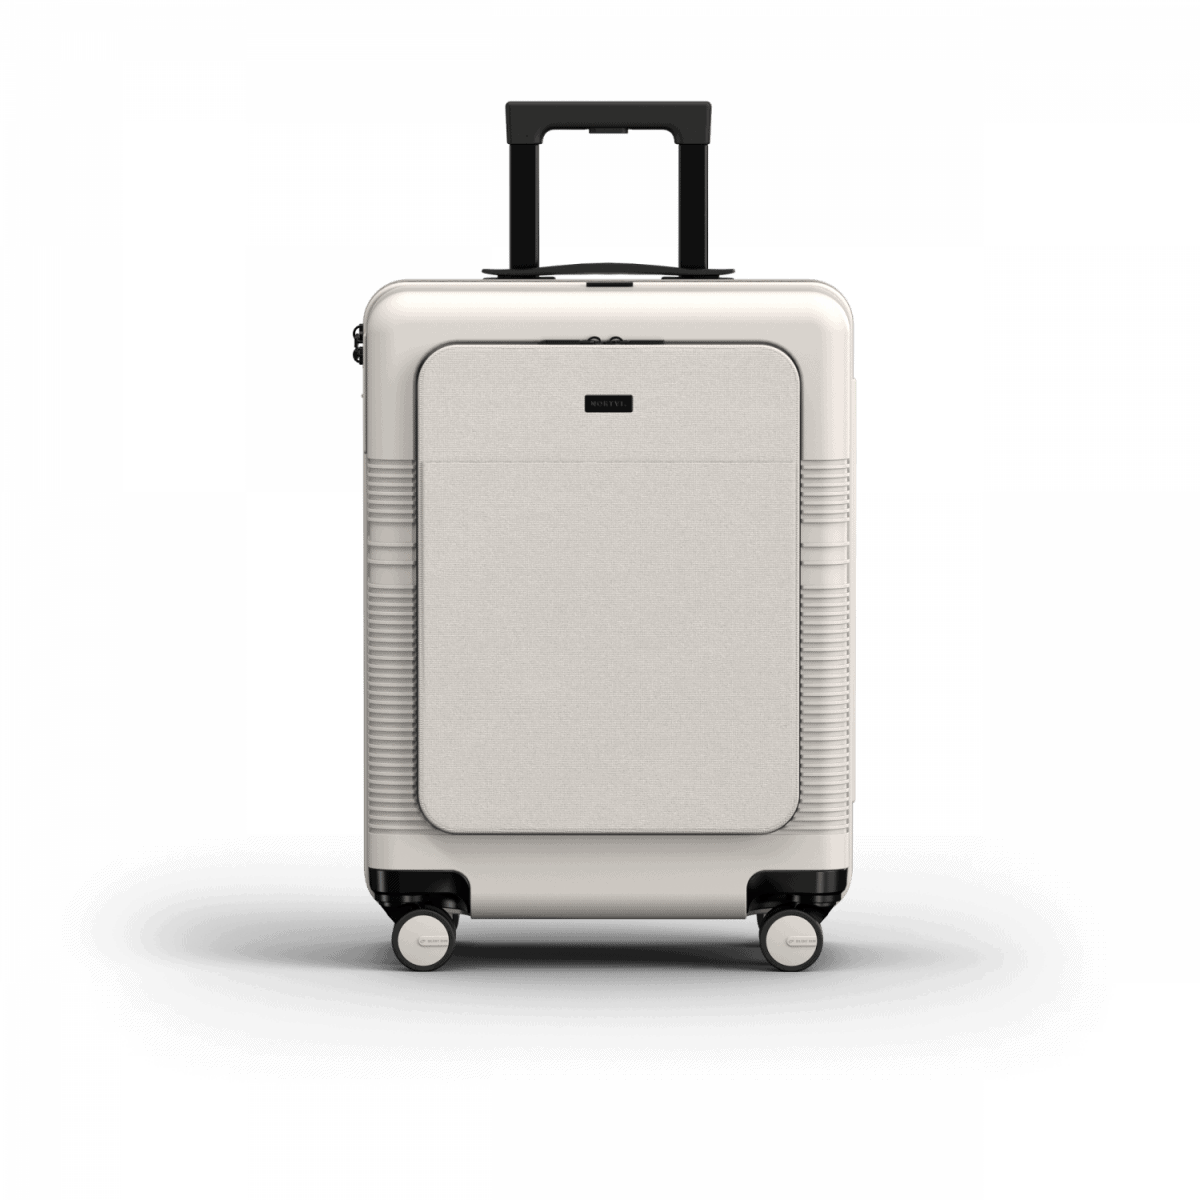 NORTVI sustainable design suitcase Sand White met Front Pocket 39 L gemaakt van duurzaam materiaal.